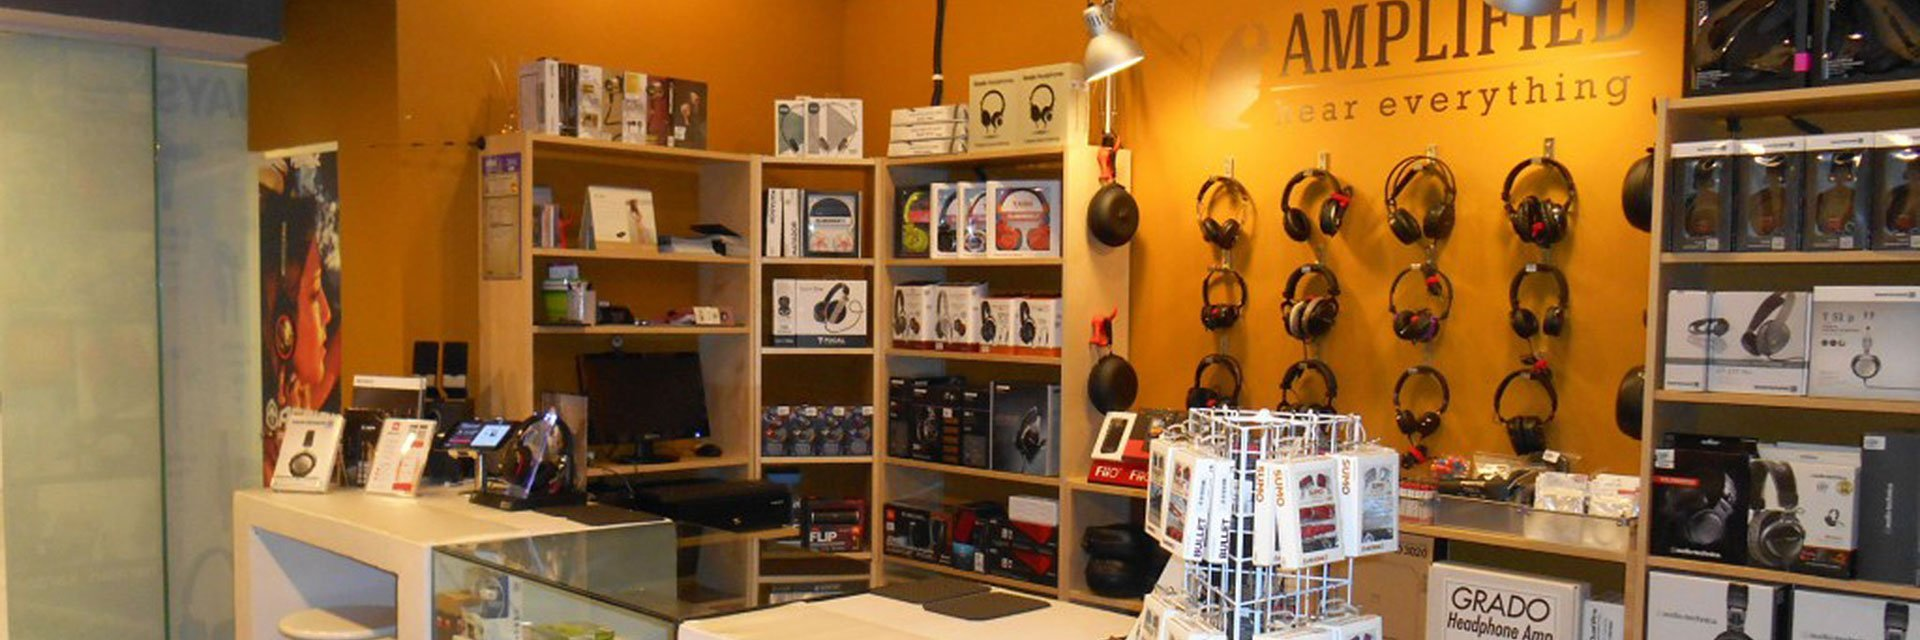 Amplified Malaysia: The Best Headphones Store